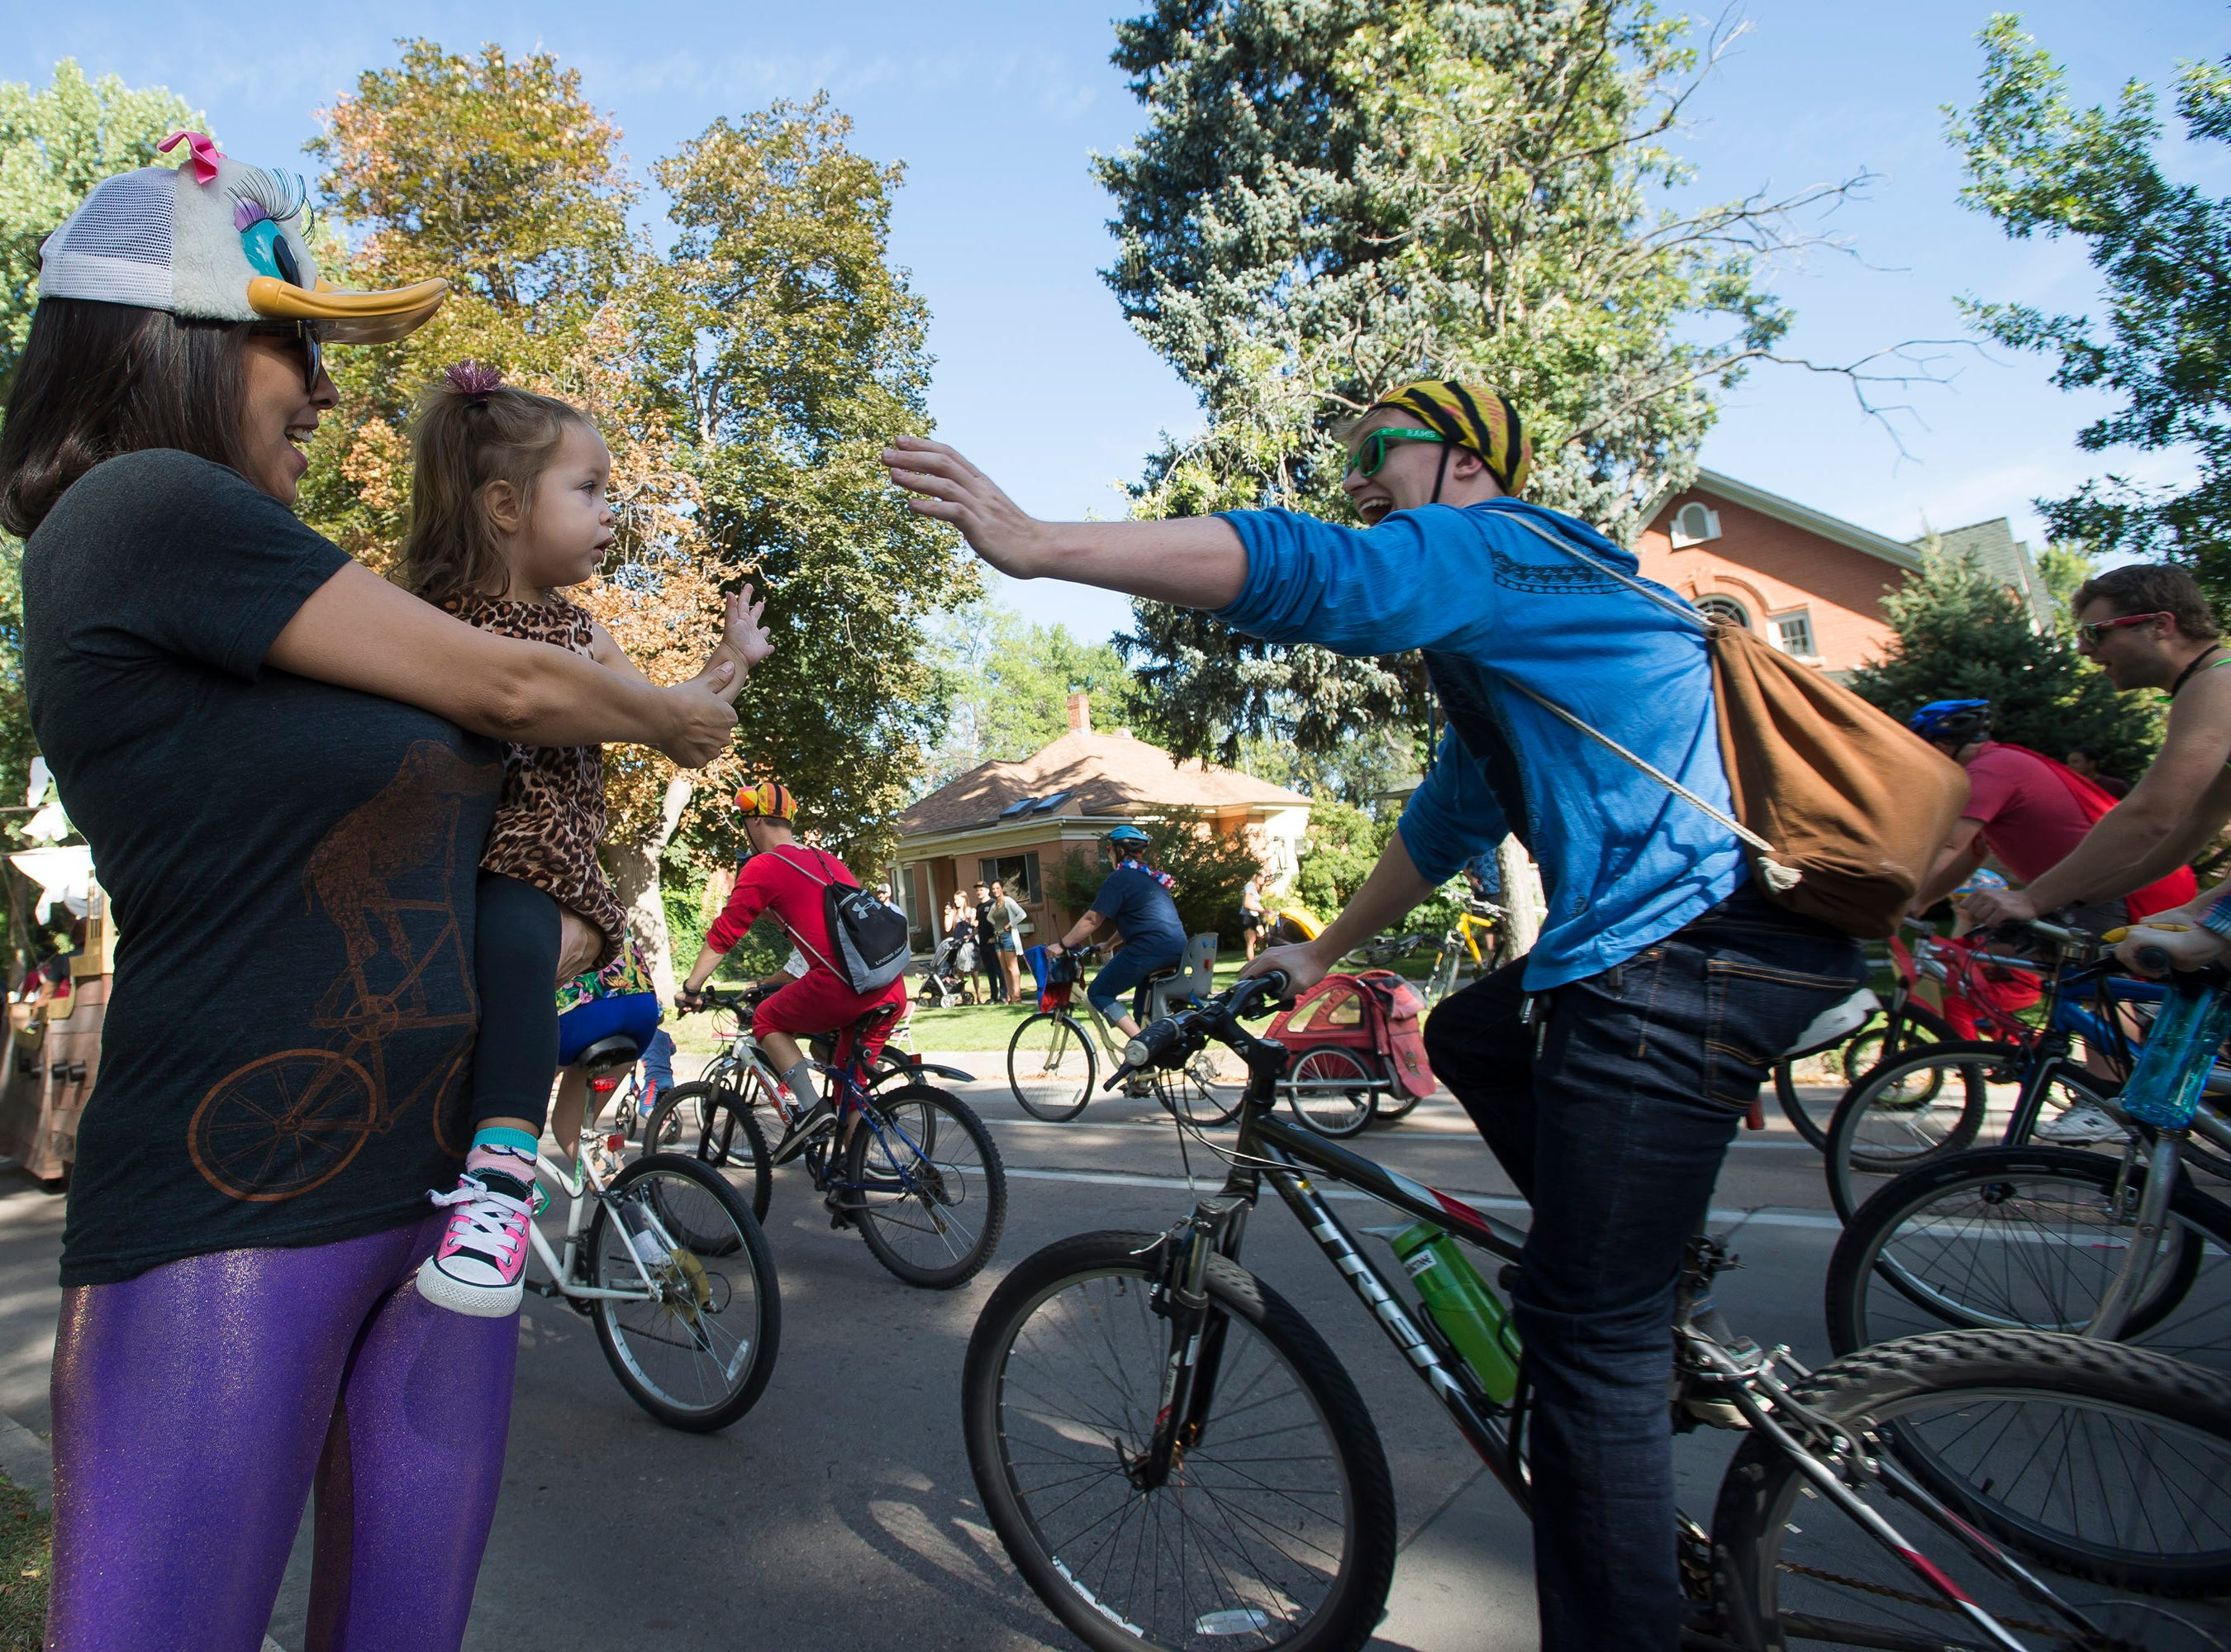 Ilana Targoff, 2, gets a high five from a rider while being held by her mother Sarah Targoff during the Tour de Fat Bike parade on Saturday, Sept. 1, 2018, in Fort Collins, Colo.